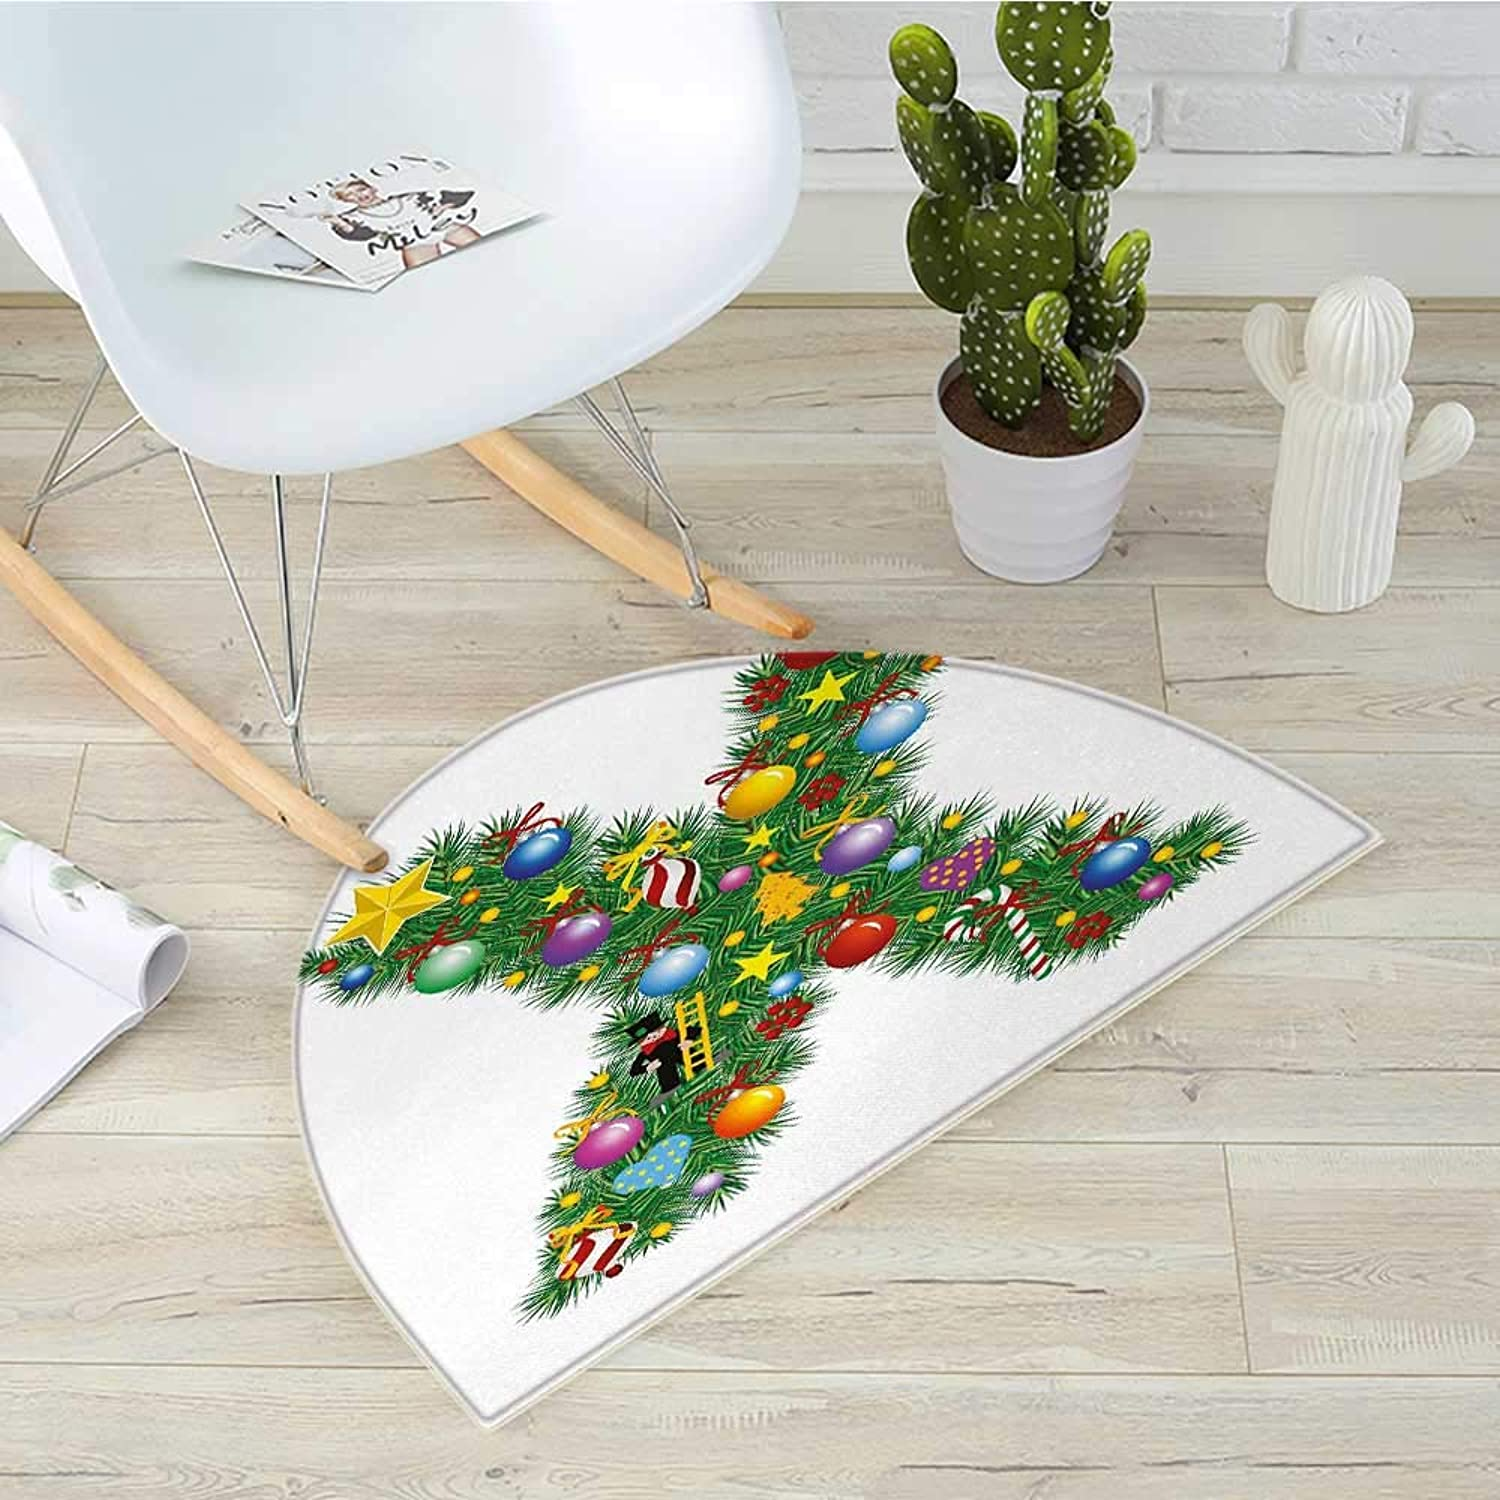 Letter X Half Round Door mats Traditional Celebration Design Coniferous Tree Font with Cheerful Elements on X Bathroom Mat H 43.3  xD 64.9  Multicolor